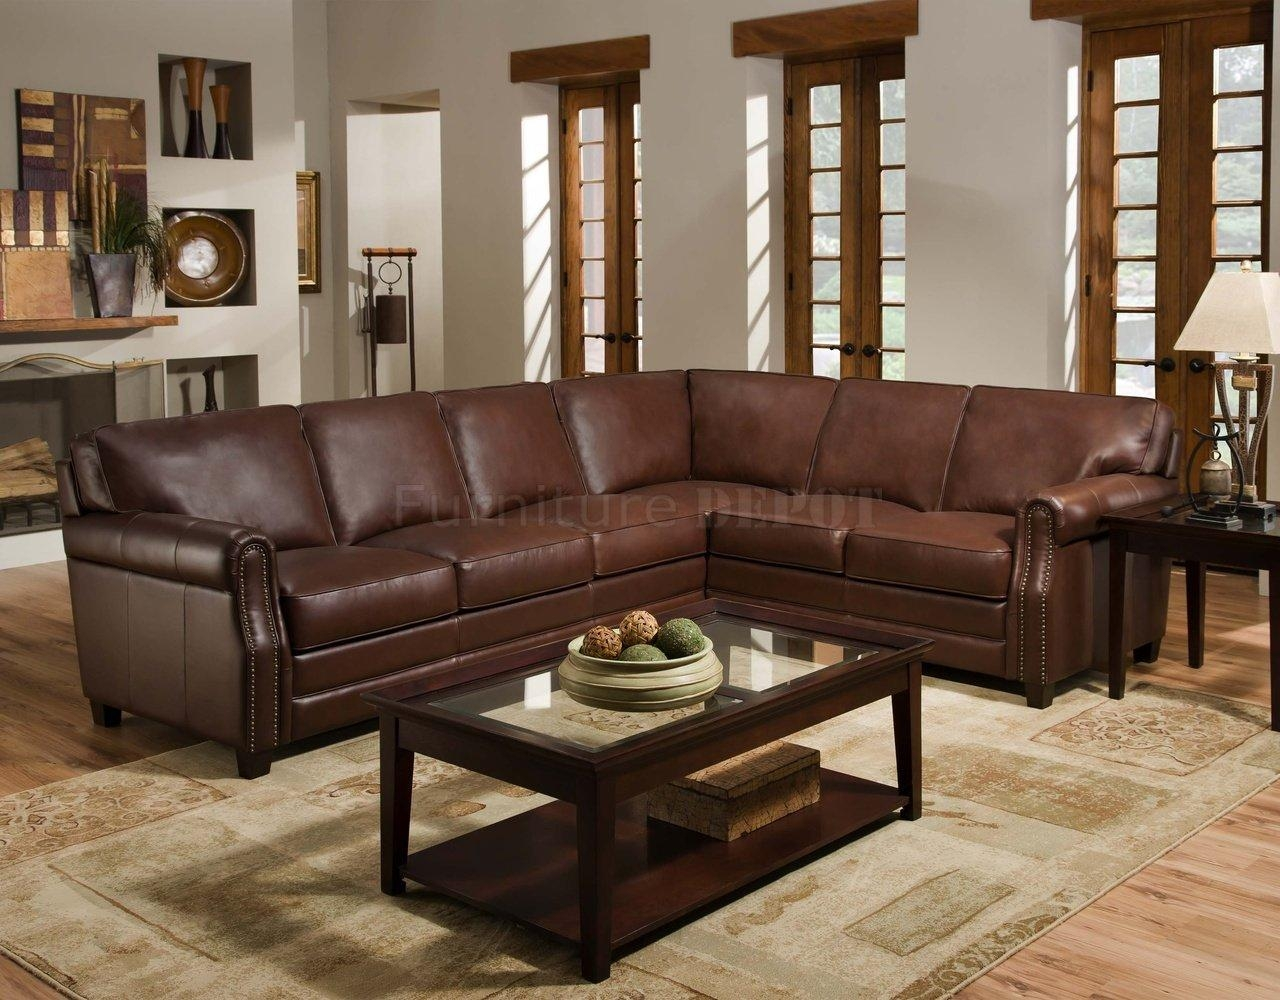 Cocoa Brown Top Grain Italian Leather Traditional Sectional Sofa Throughout Traditional Sectional Sofas Living Room Furniture (Image 2 of 20)